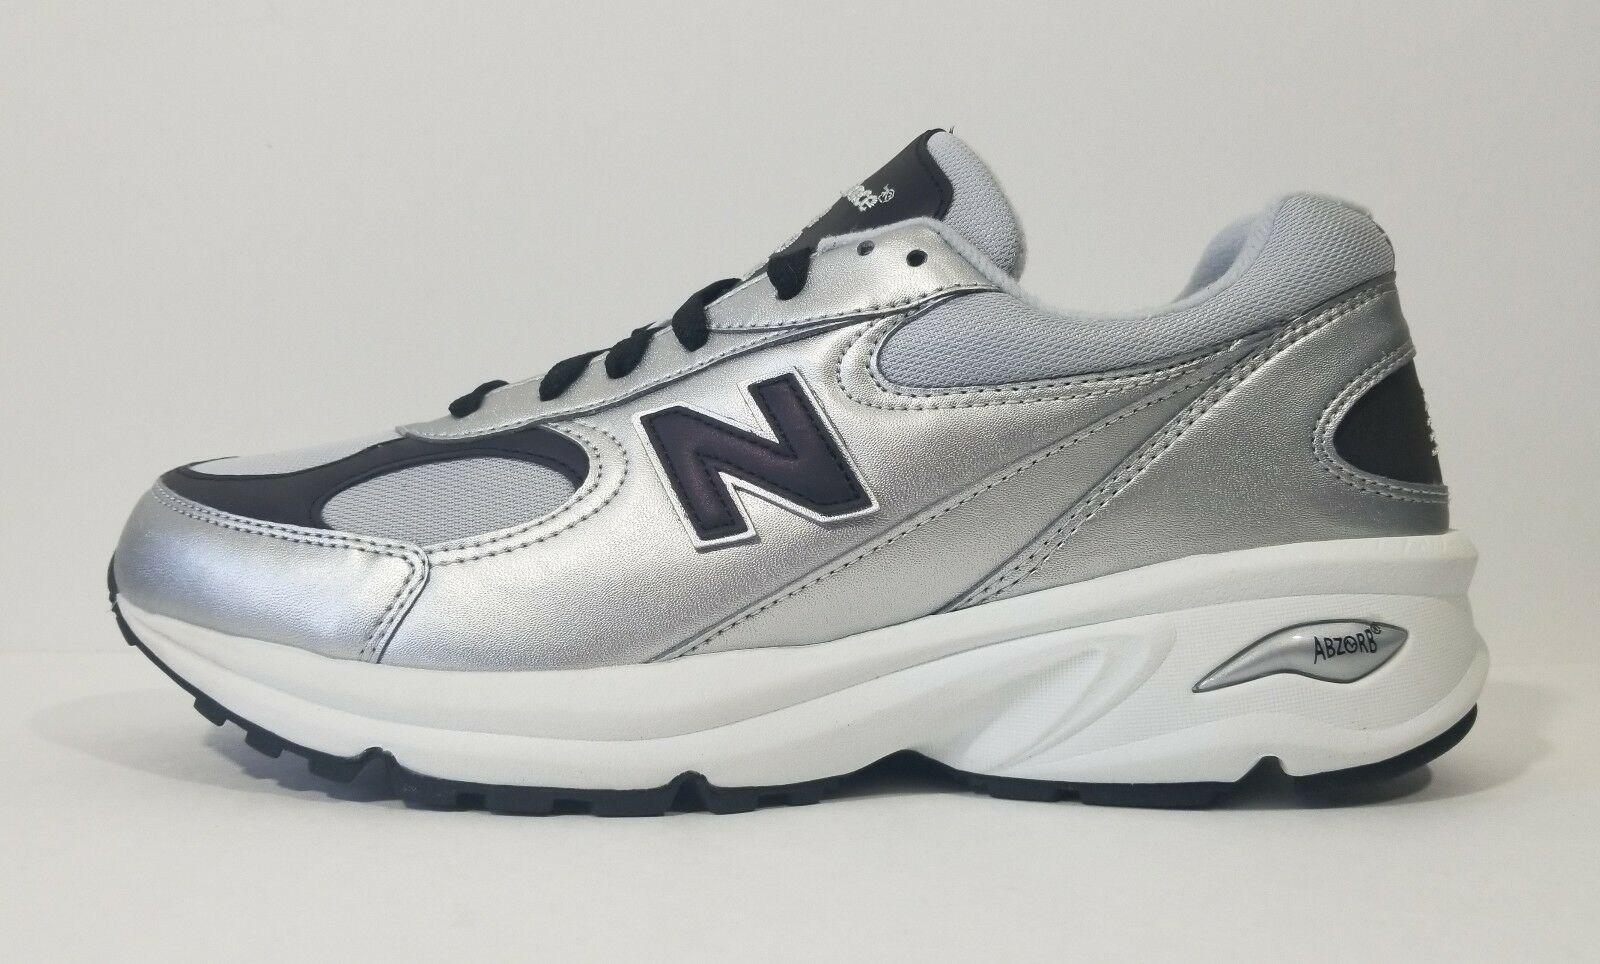 New Balance 498 Abzorb Mens Running Shoes Silver White Gray Size 9.5